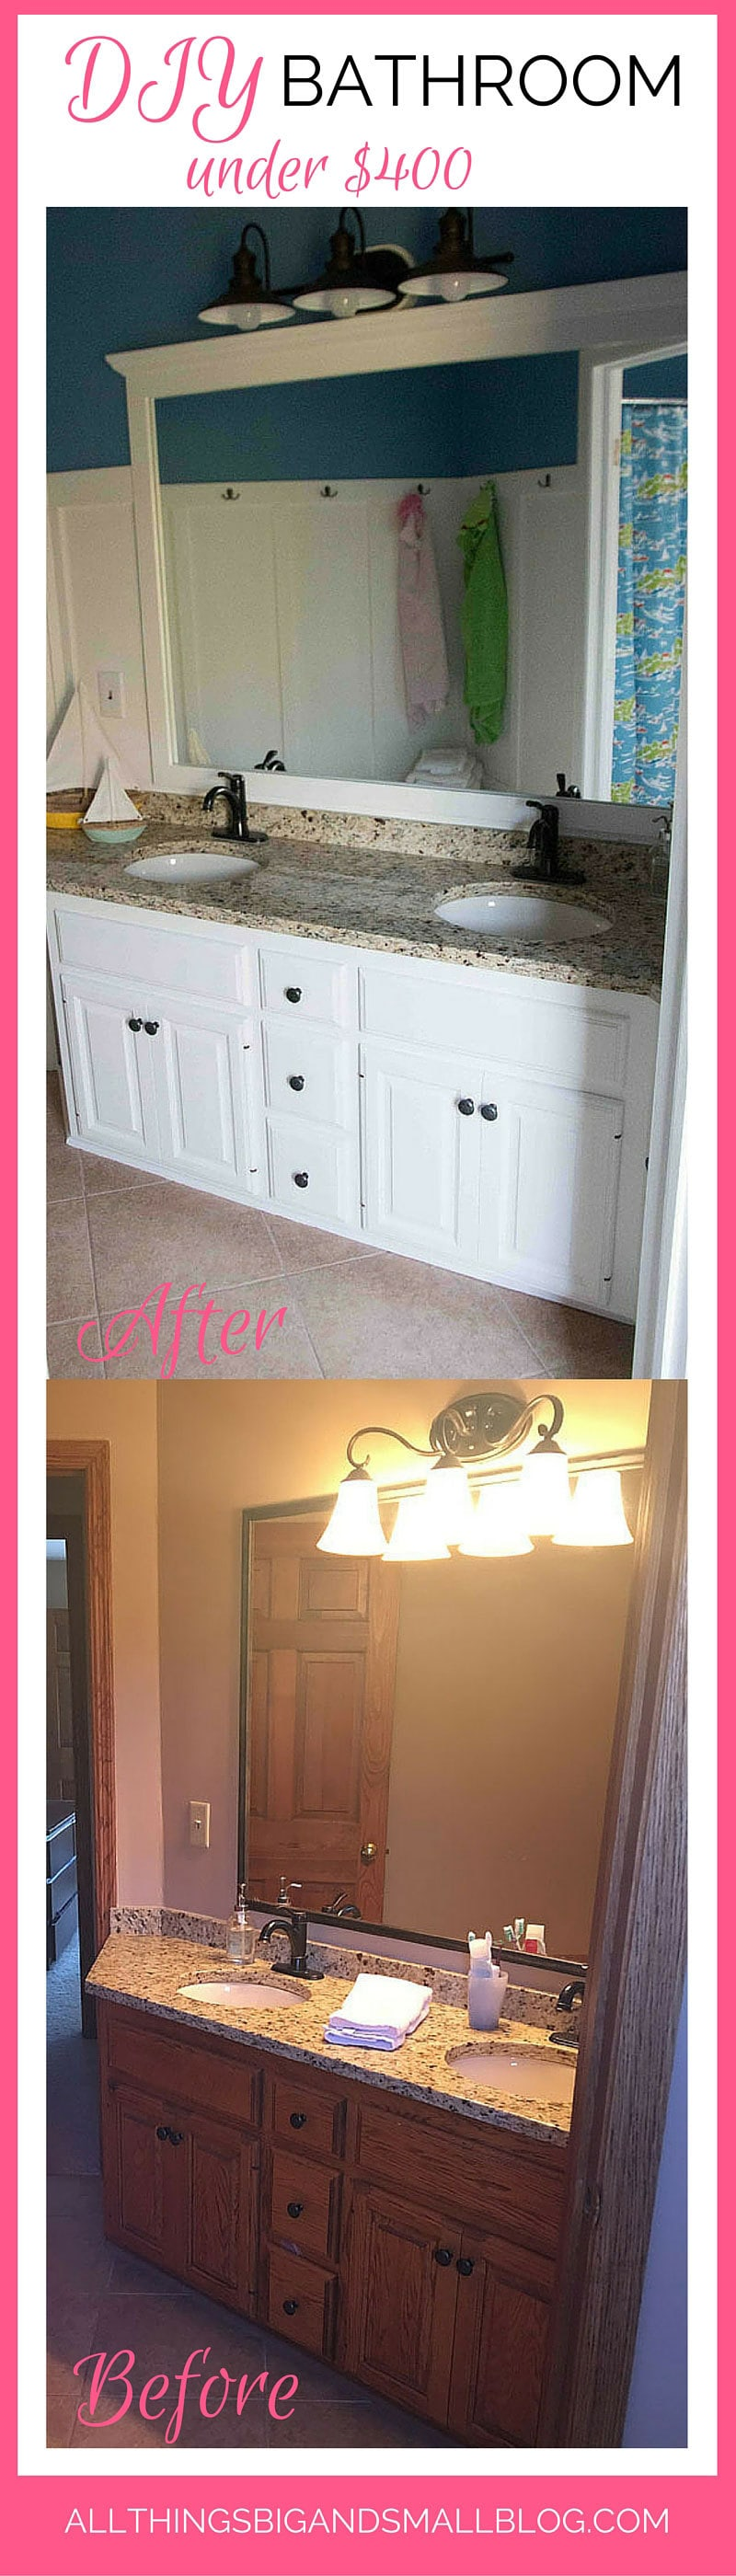 BEFORE and AFTER DIY bathroom for under $400--budget friendly bathroom DIY for a nautical kids bath! Full sources and directions at All Things Big and Small--a DIY Lifestyle Blog!